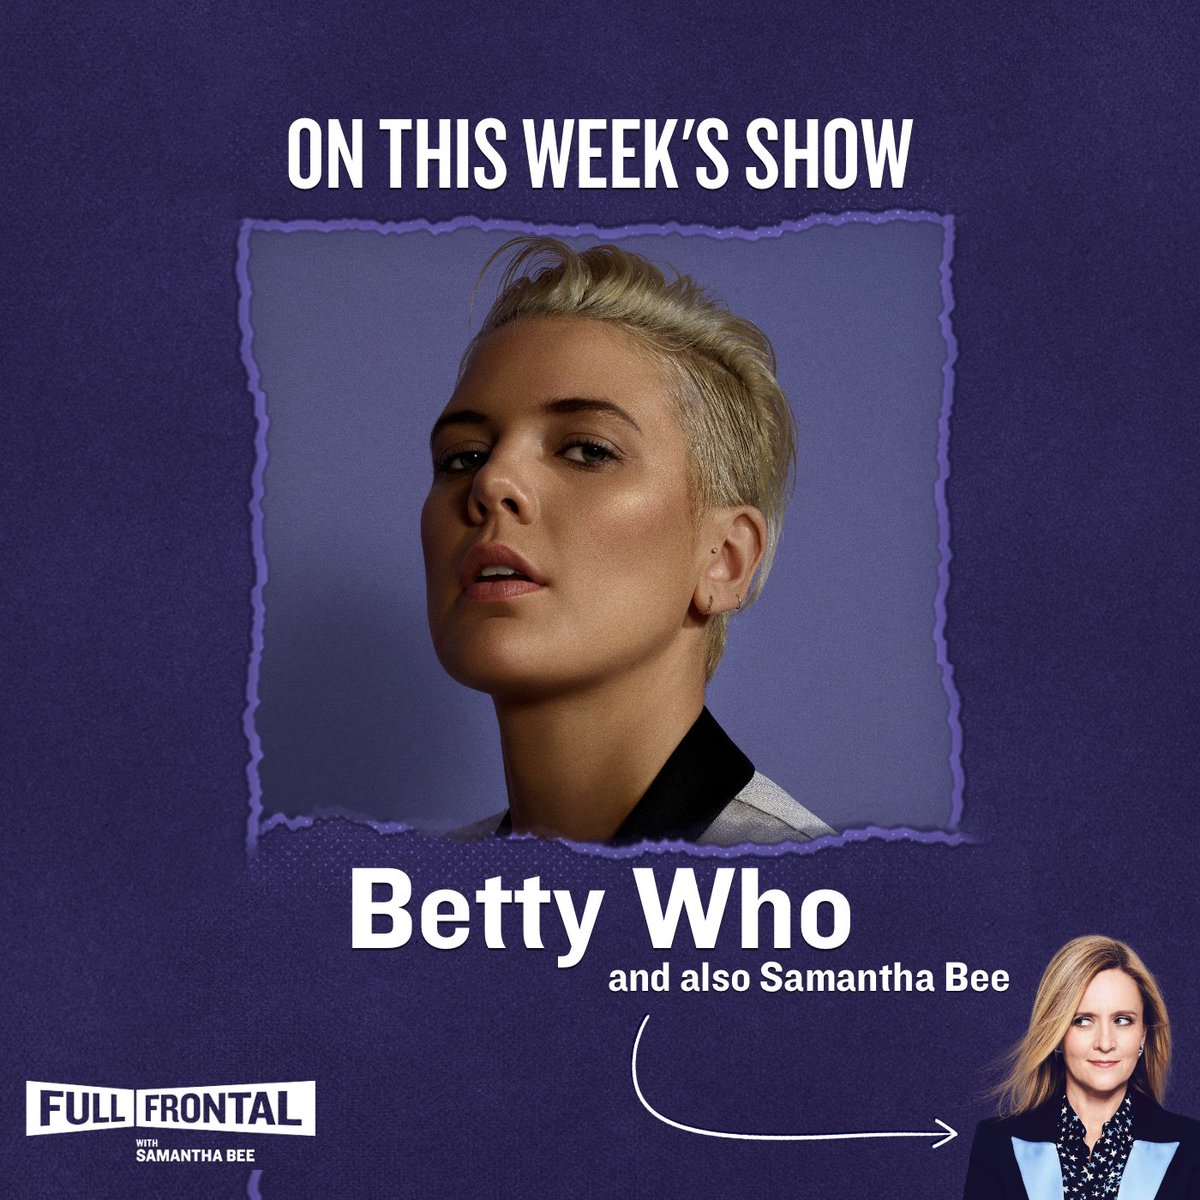 Tune in tomorrow night at 10:30PM on TBS for @bettywho!